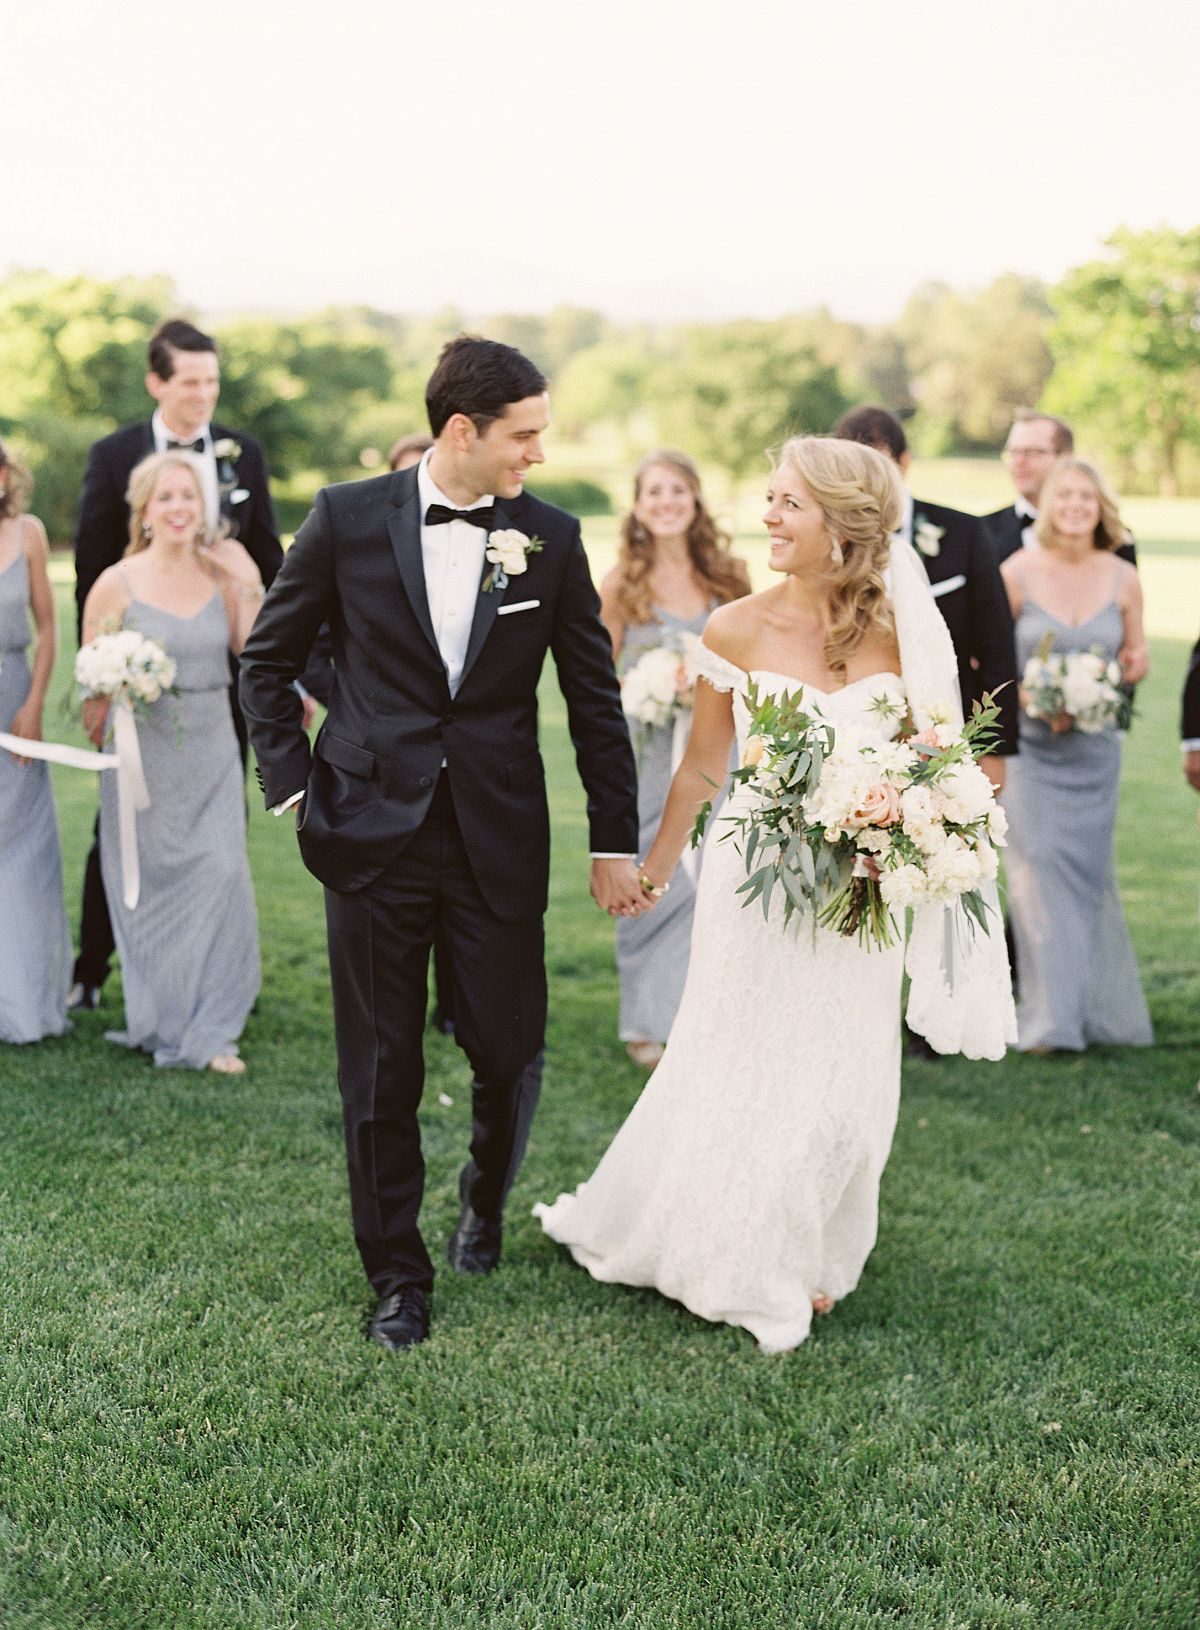 Bluegrey bridesmaids and black tuxes wedding planning pinterest